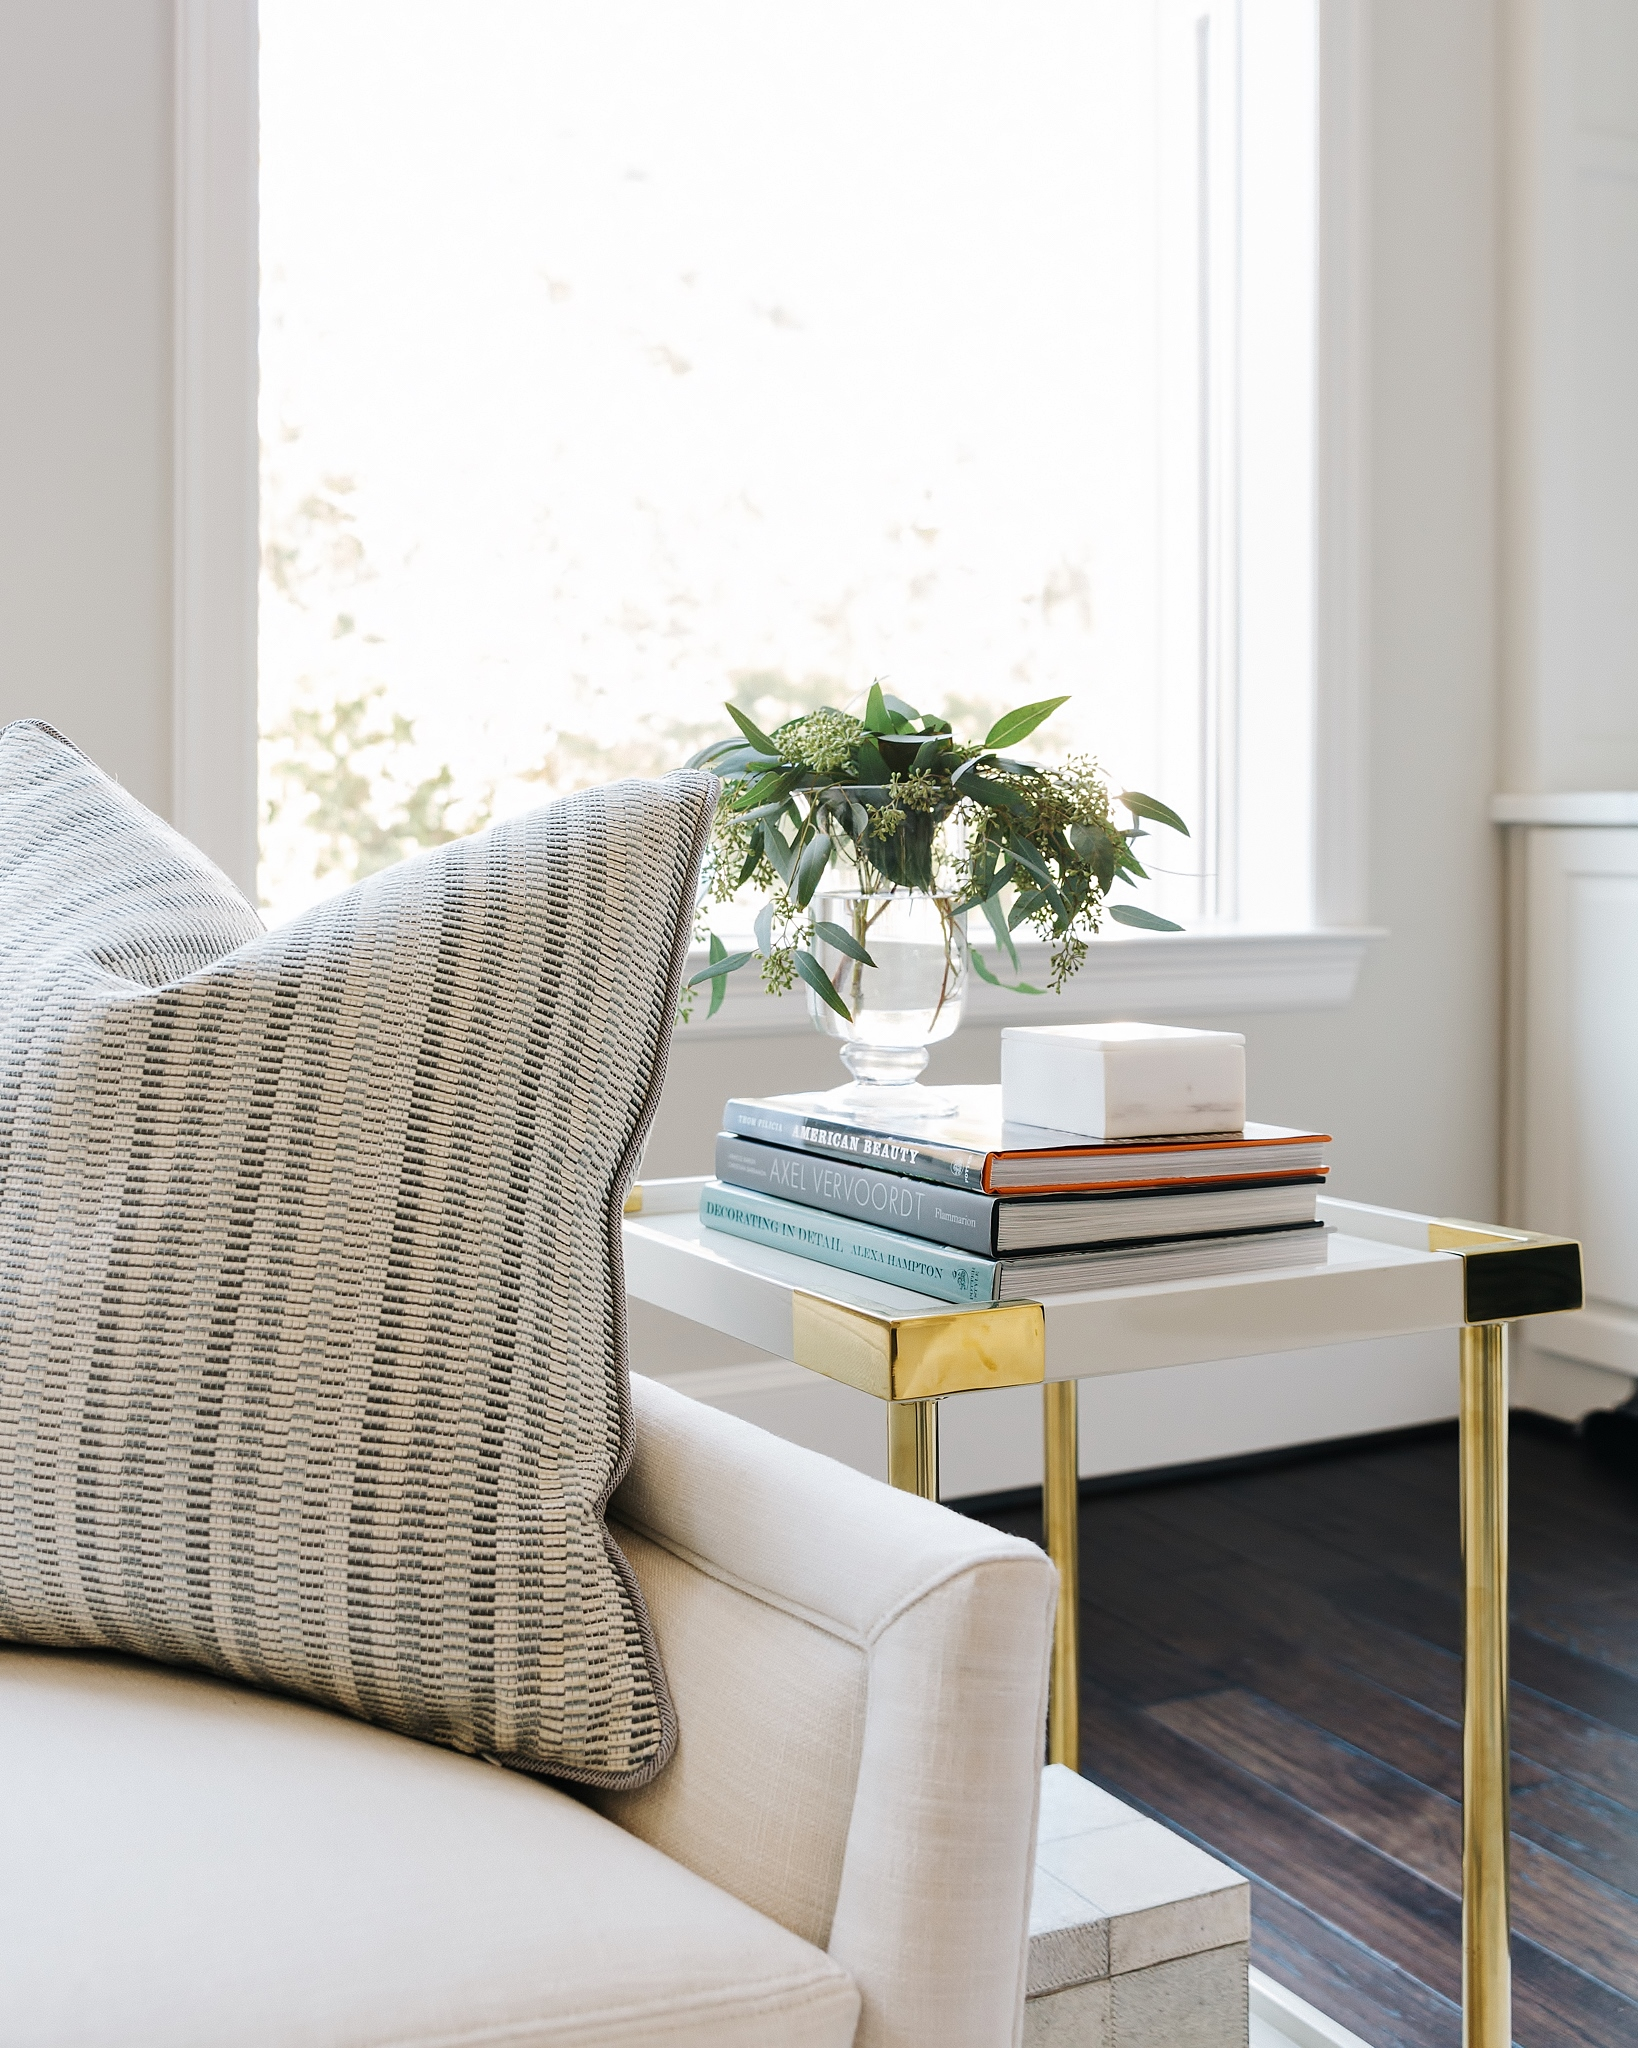 Side table in living room with books for styling | Carla Aston, Designer | Colleen Scott, Photographer #coffeetablebooks #bookshelfstyling #coffeetablestyling